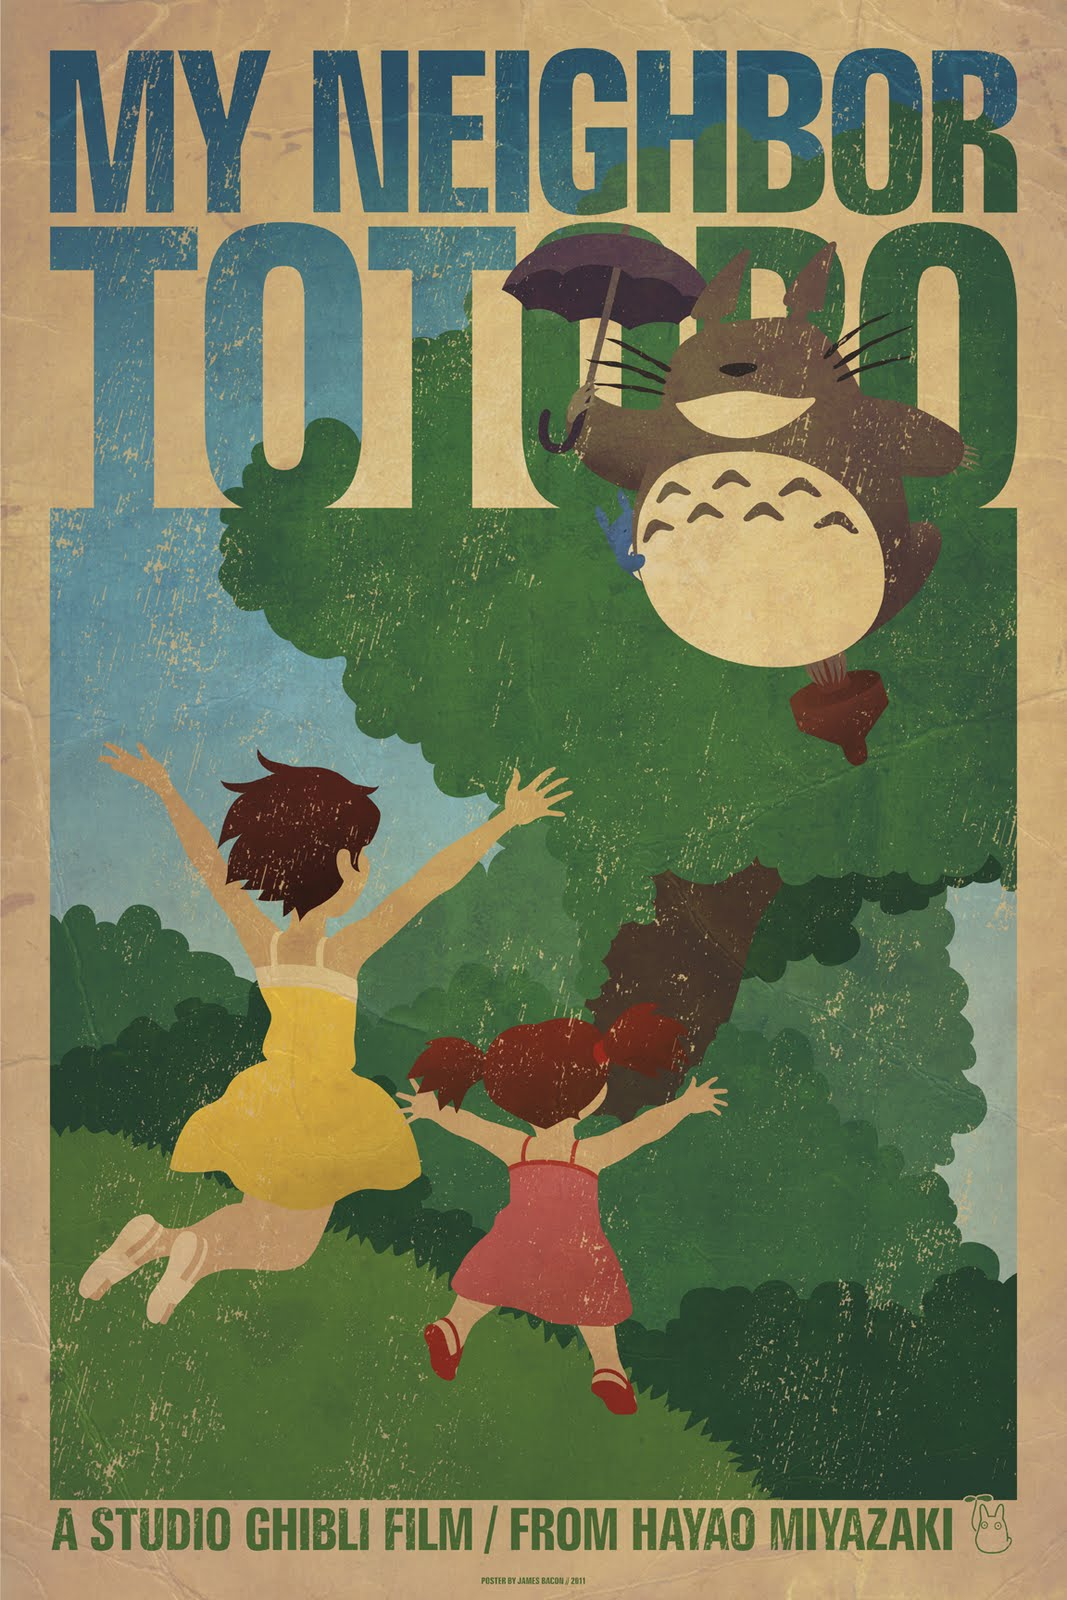 James Bacon Graphic Design: My Neighbor Totoro Poster